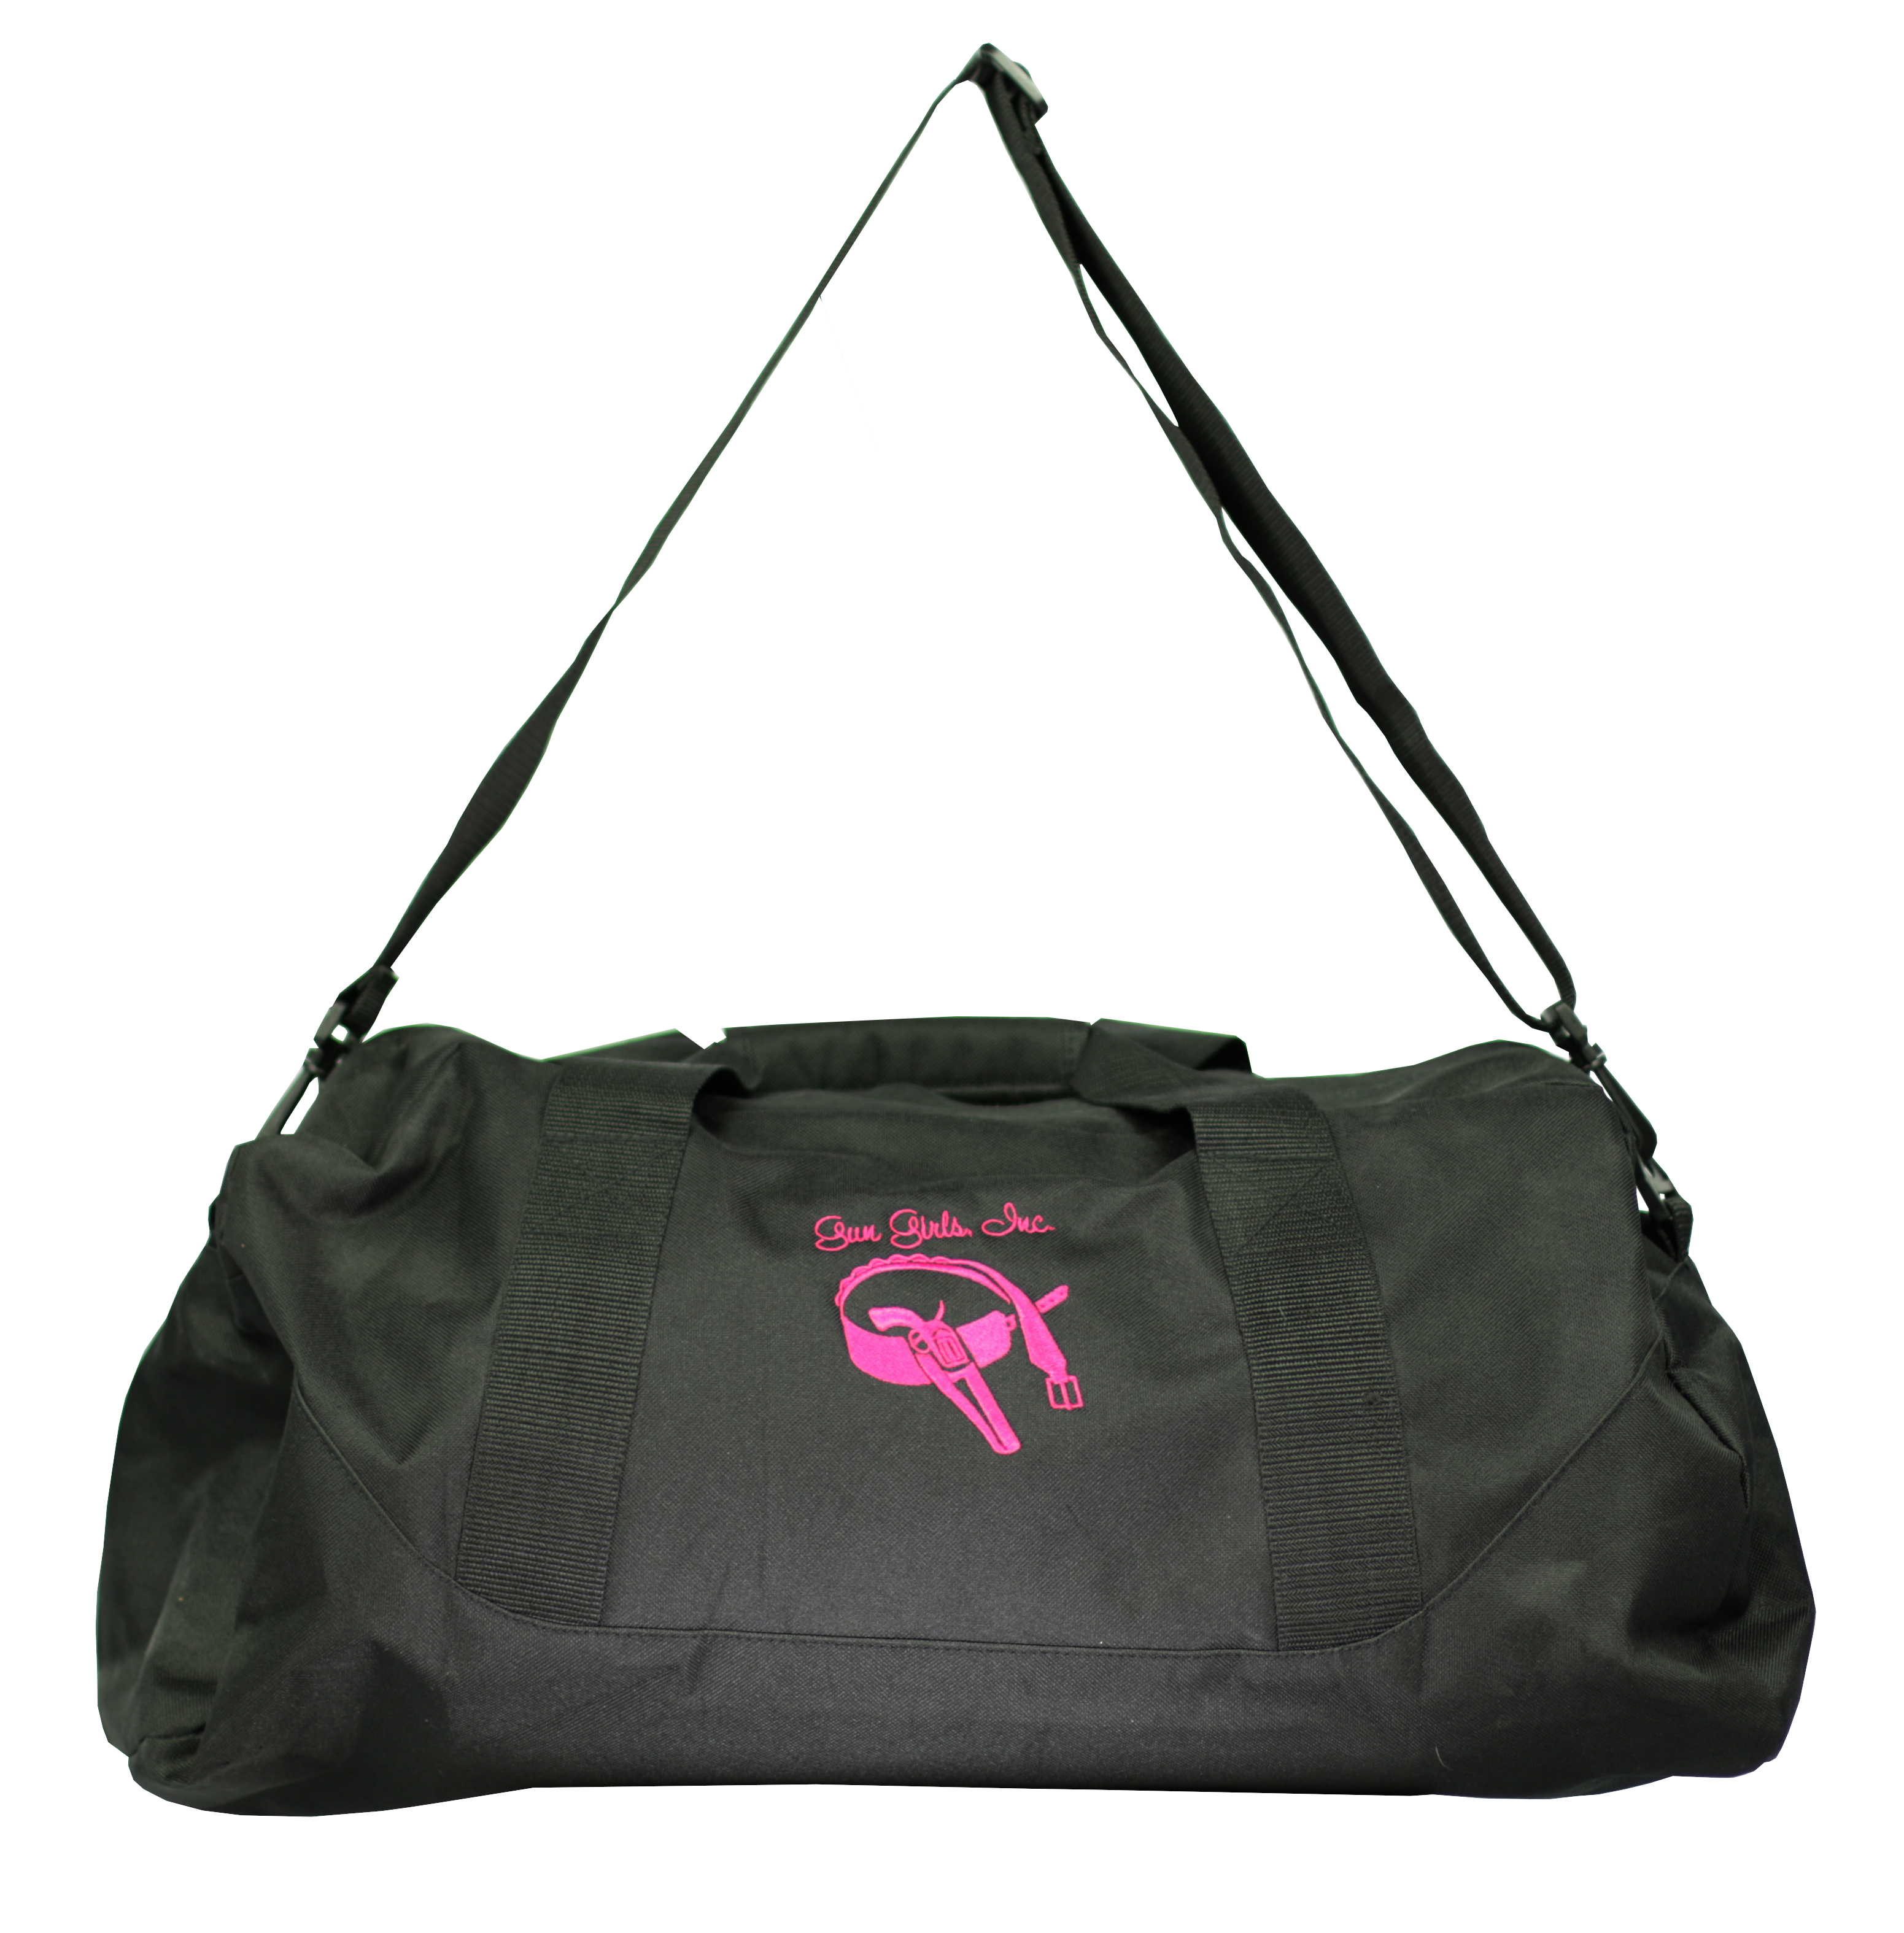 BLACK EMBROIDERED CUSTOM LOGO GYM/DUFFLE BAG